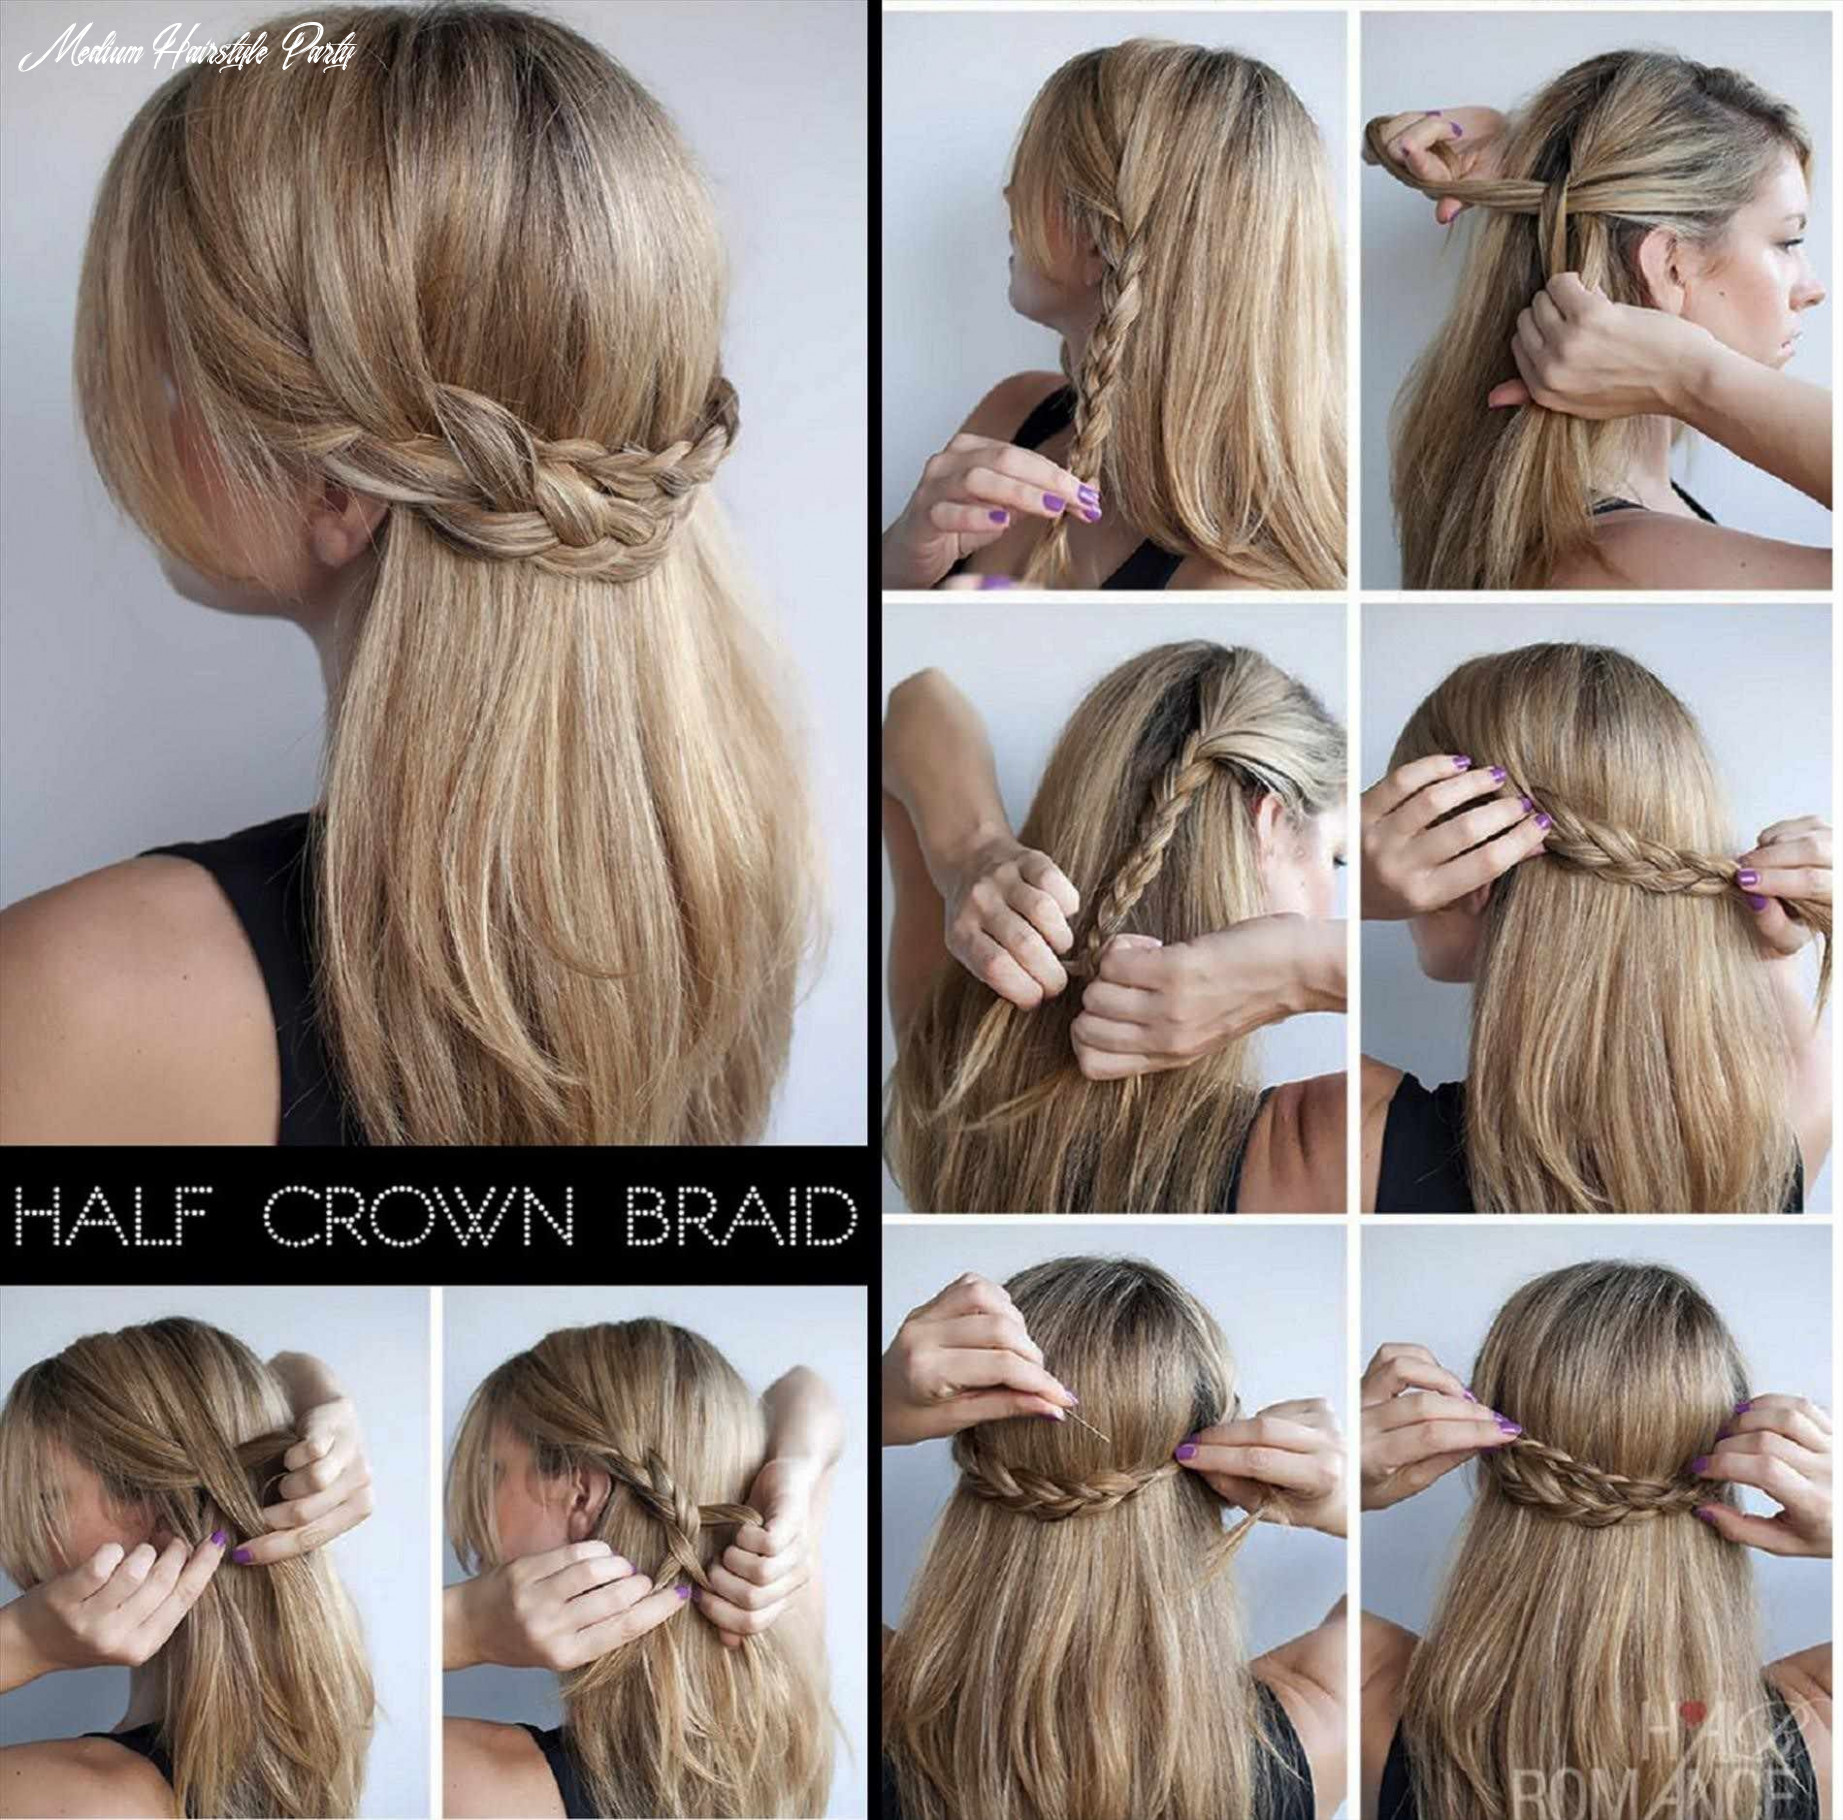 8 Easy Rules Of Simple Hairstyle For Party | Cute blonde hair ...